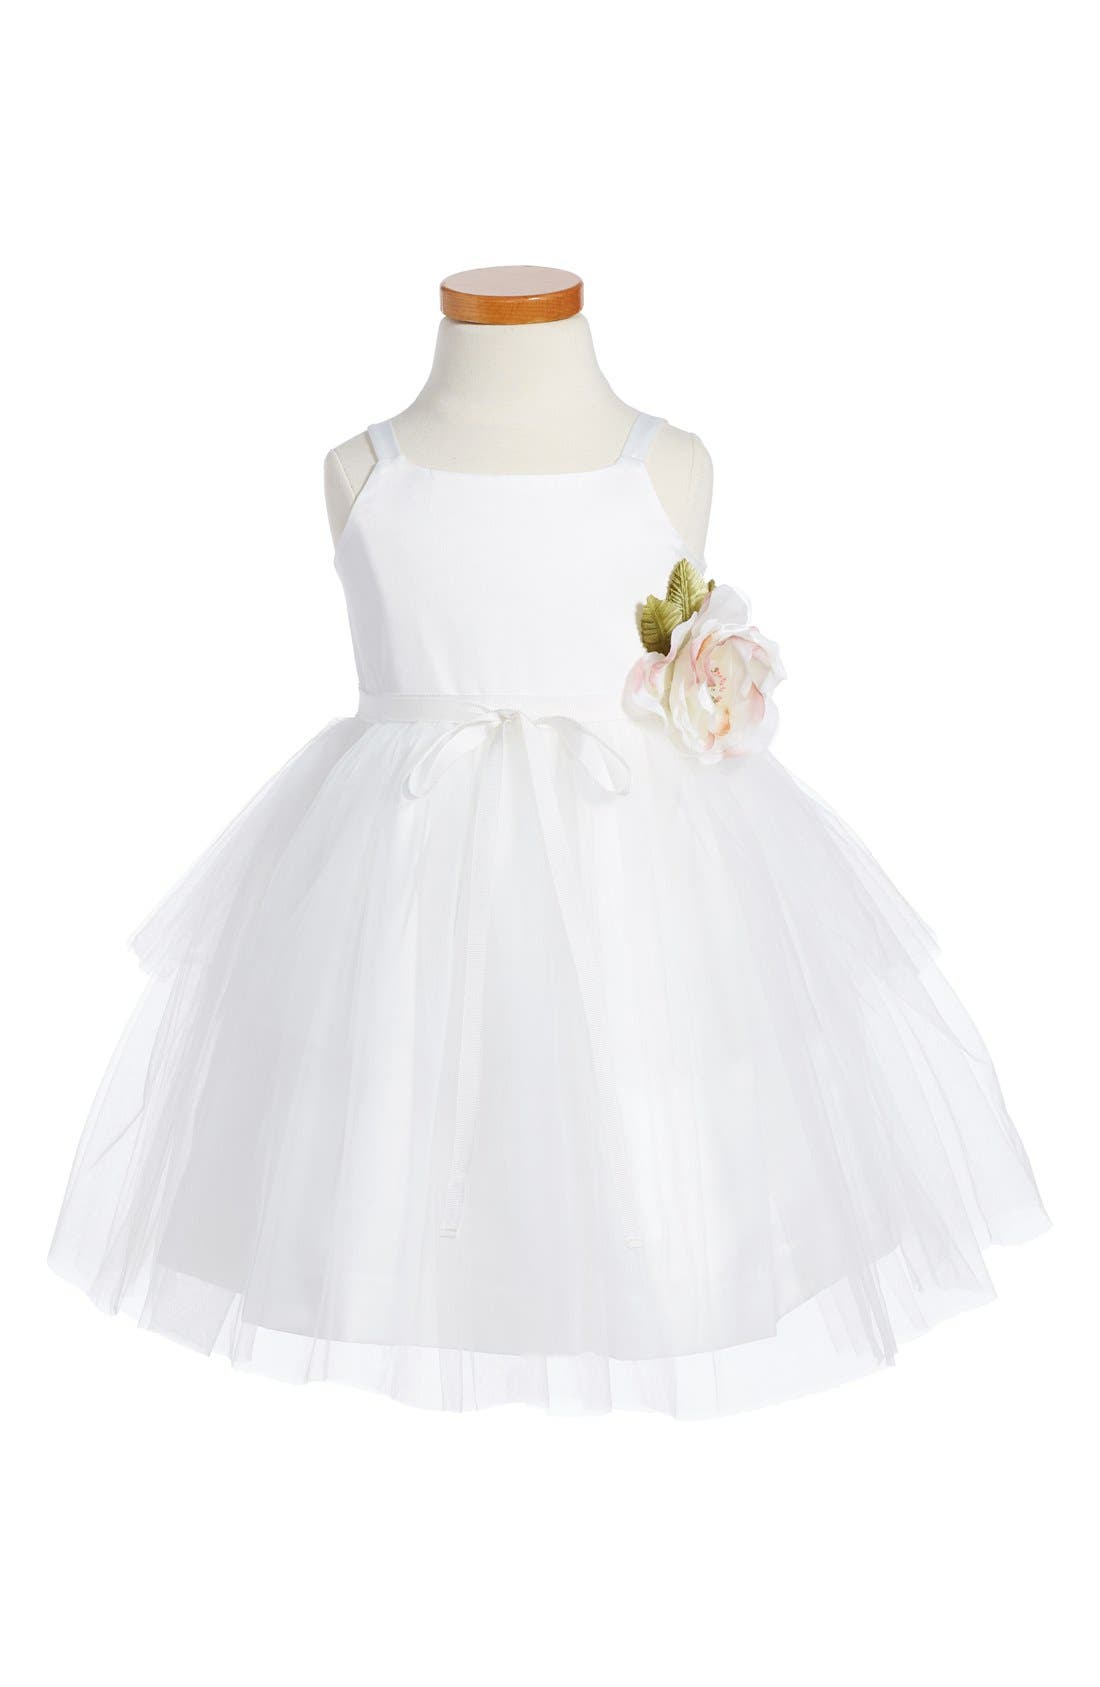 Tulle Ballerina Dress,                             Main thumbnail 1, color,                             IVORY